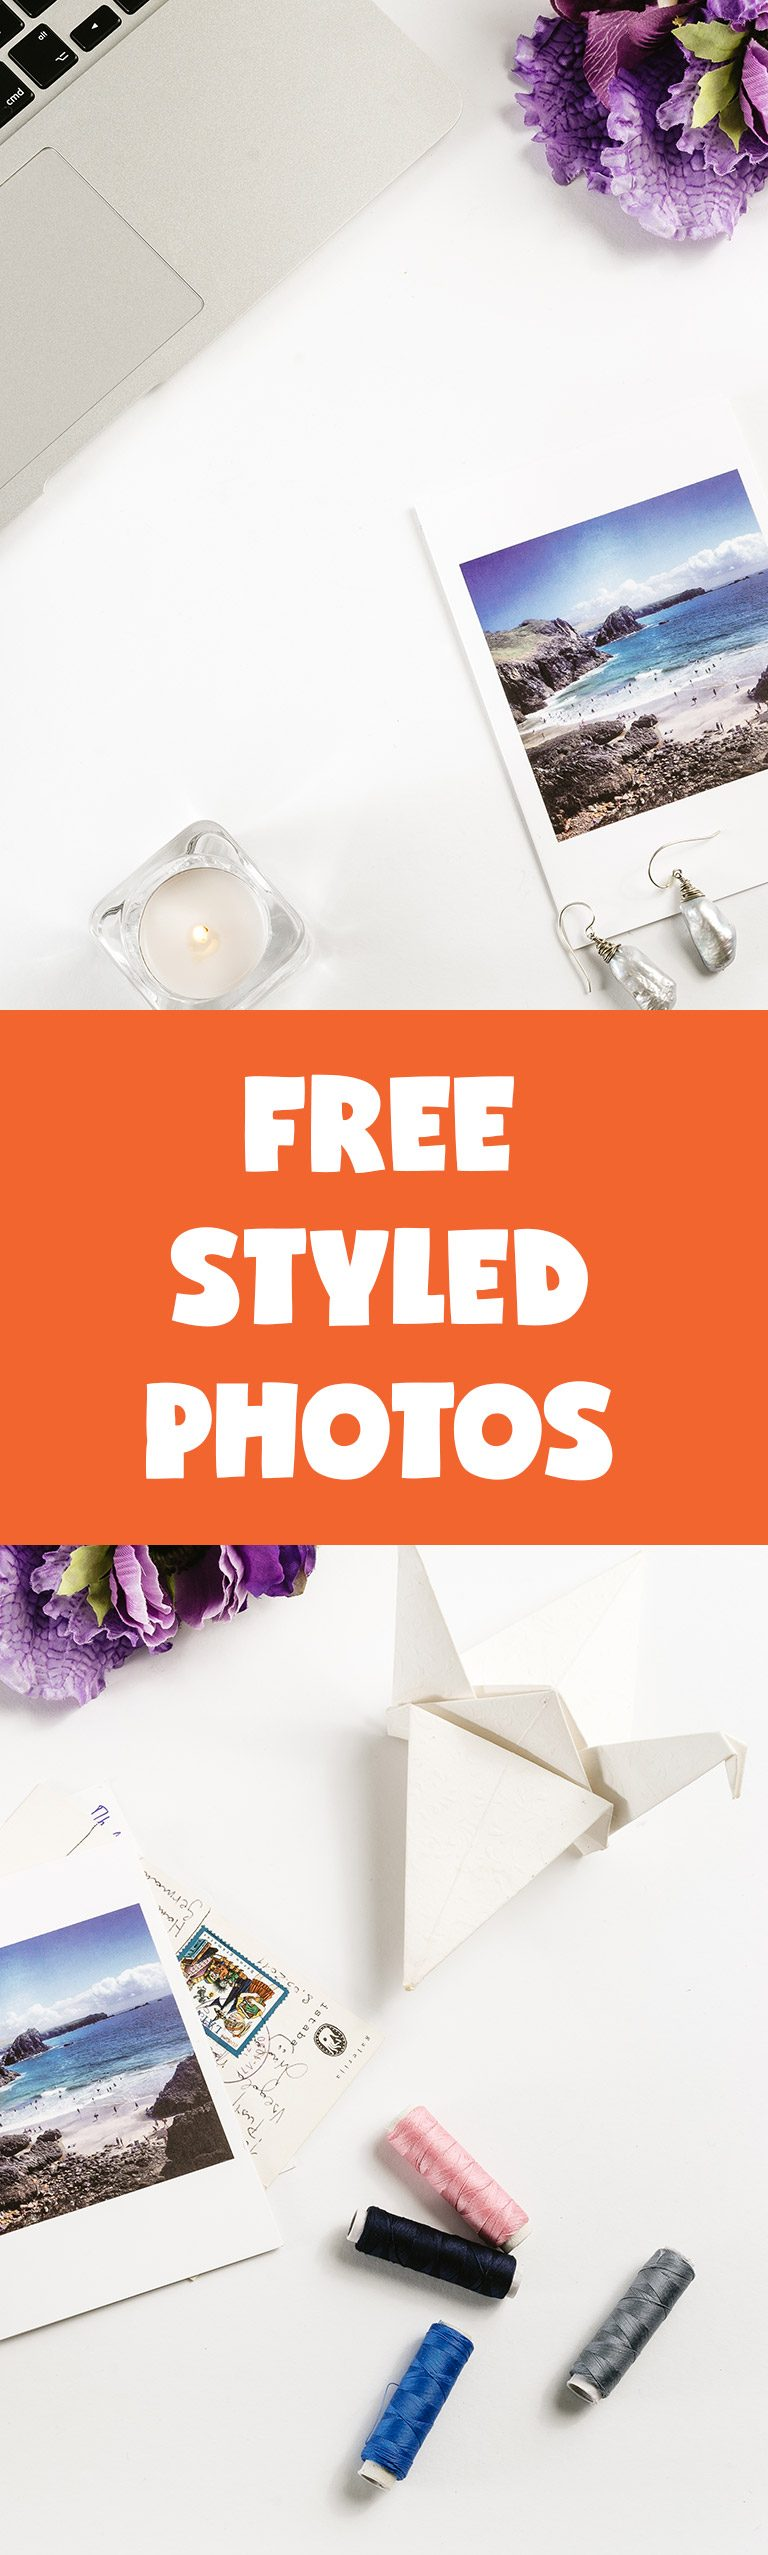 Download 10 free styled stock photos and non-stock photos! An amazing free images resource for blog, design and small business. Updated every day! Nothing but gorgeous photographs – one of the best blogging resources around.